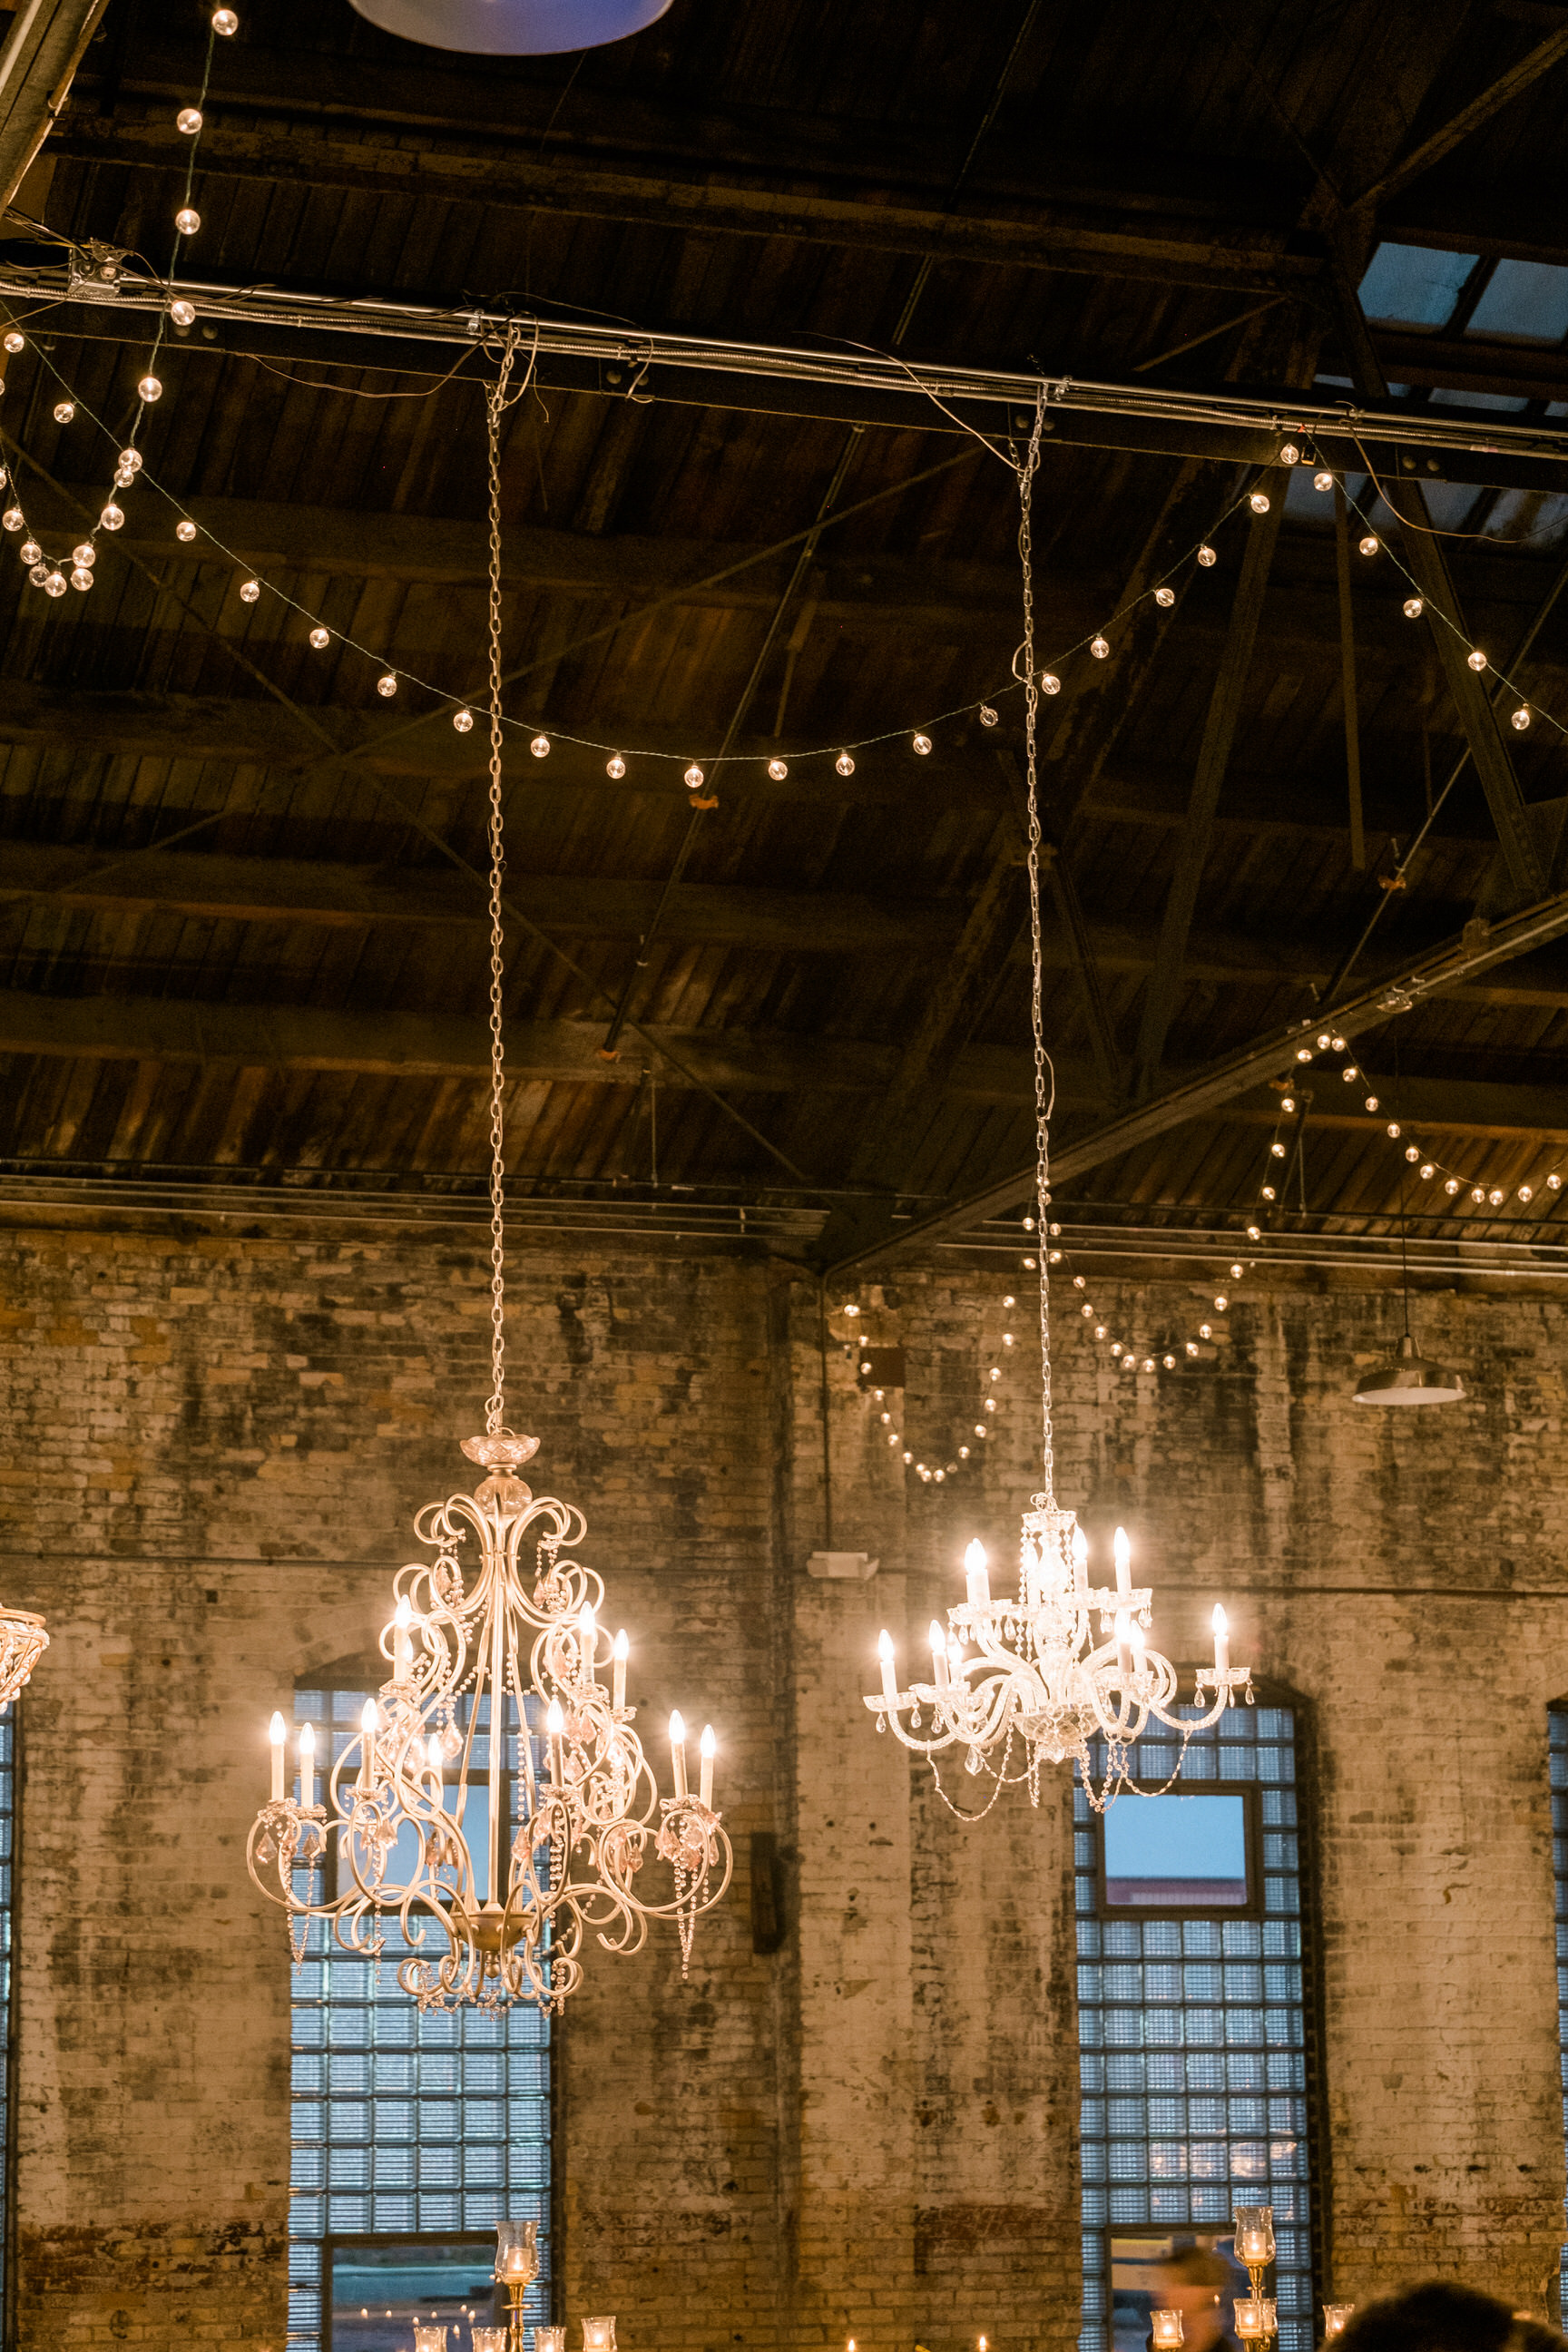 chandeliers in the np space